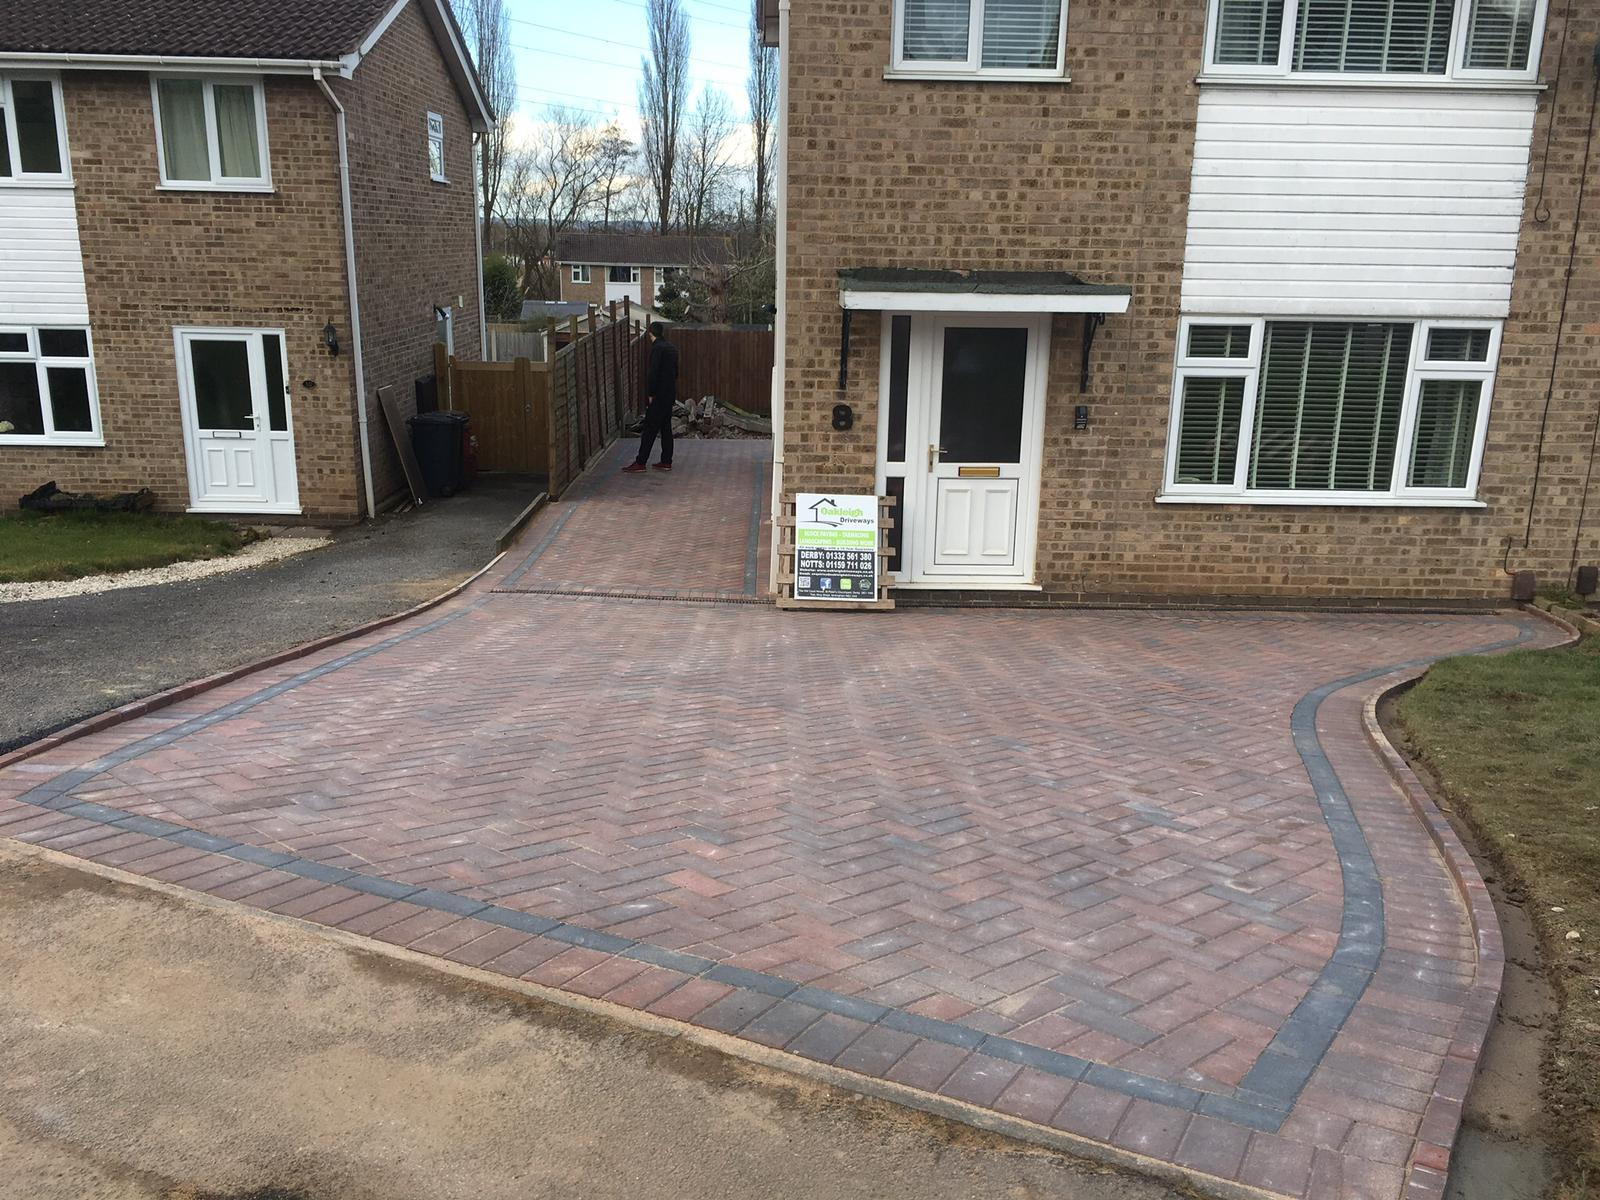 New Block Paving Driveway in Castle Donington, Leicestershire